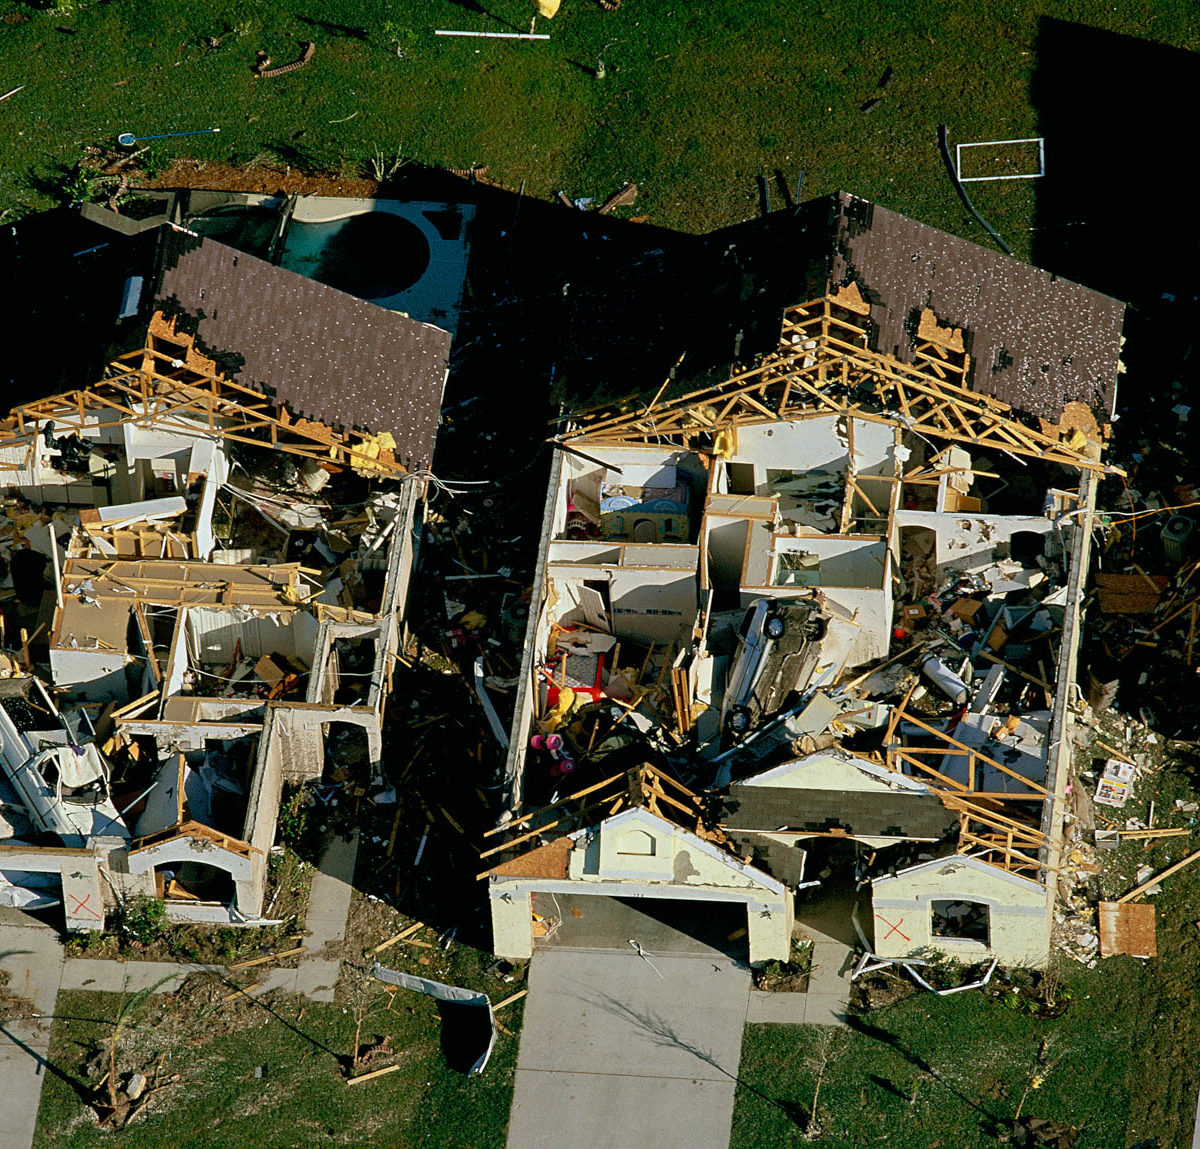 TORNADO DAMAGE IN OSCEOLA COUNTY, Florida, United States (28°16' N, 81°25' W)